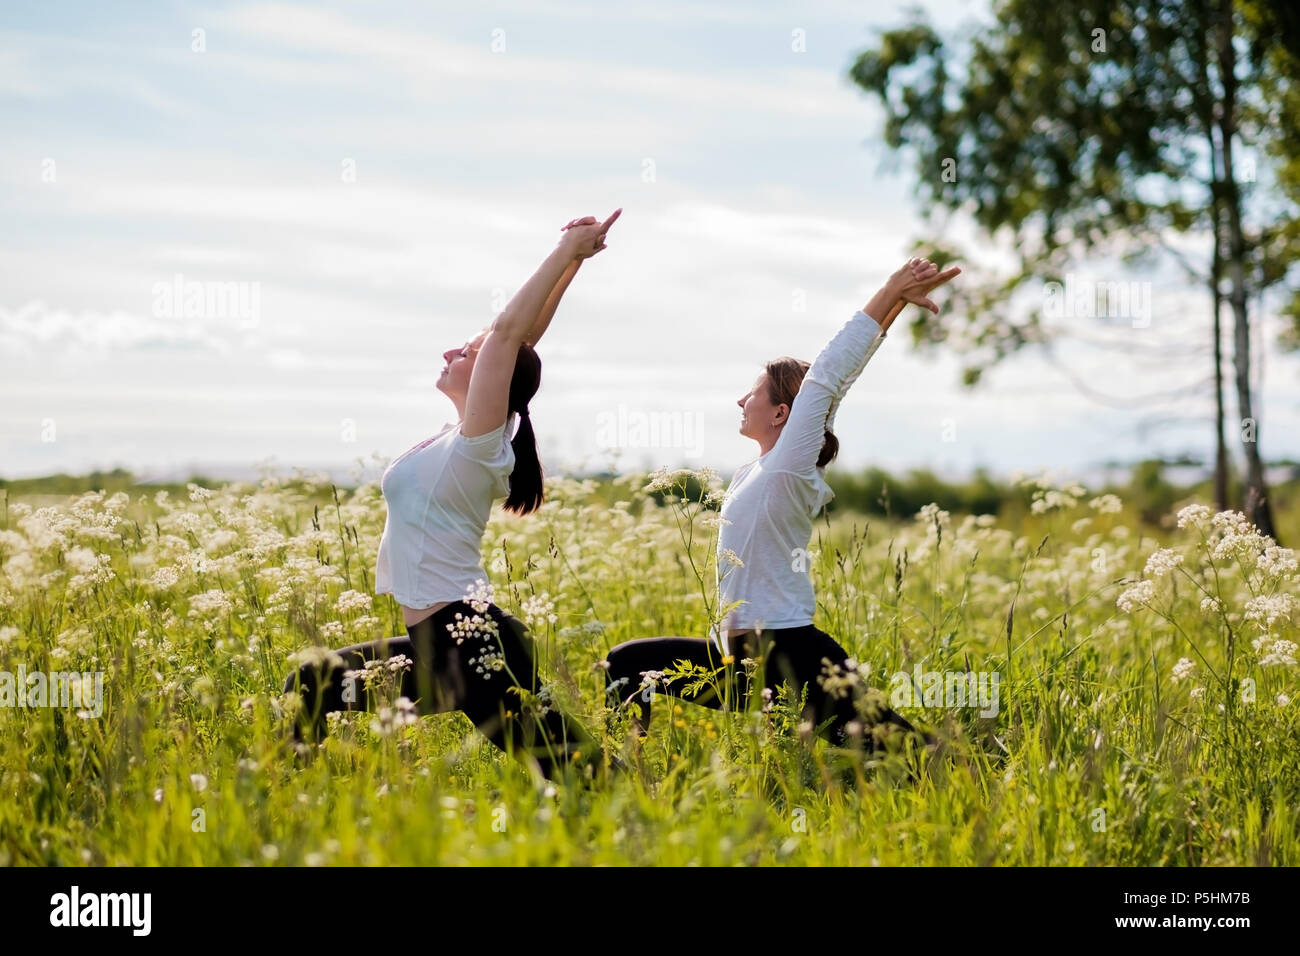 Young two women practicing yoga outdoor in park. - Stock Image